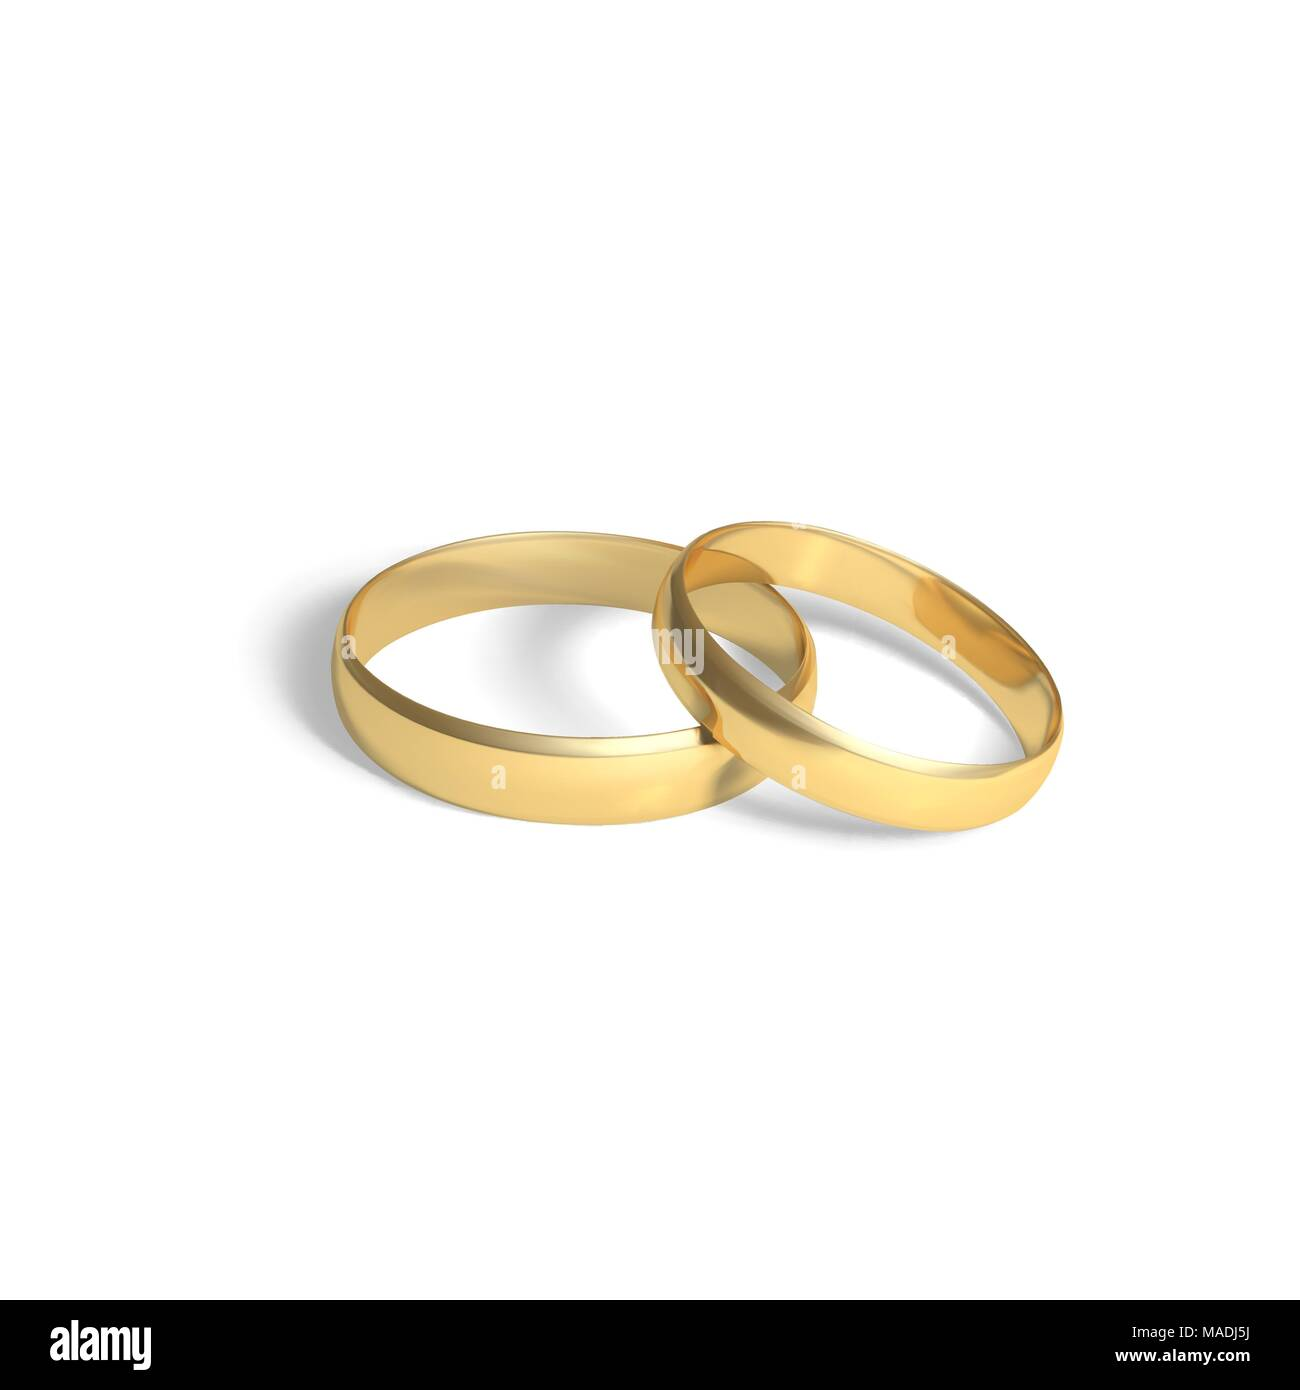 Wedding Ring Vector Vectors High Resolution Stock Photography And Images Alamy